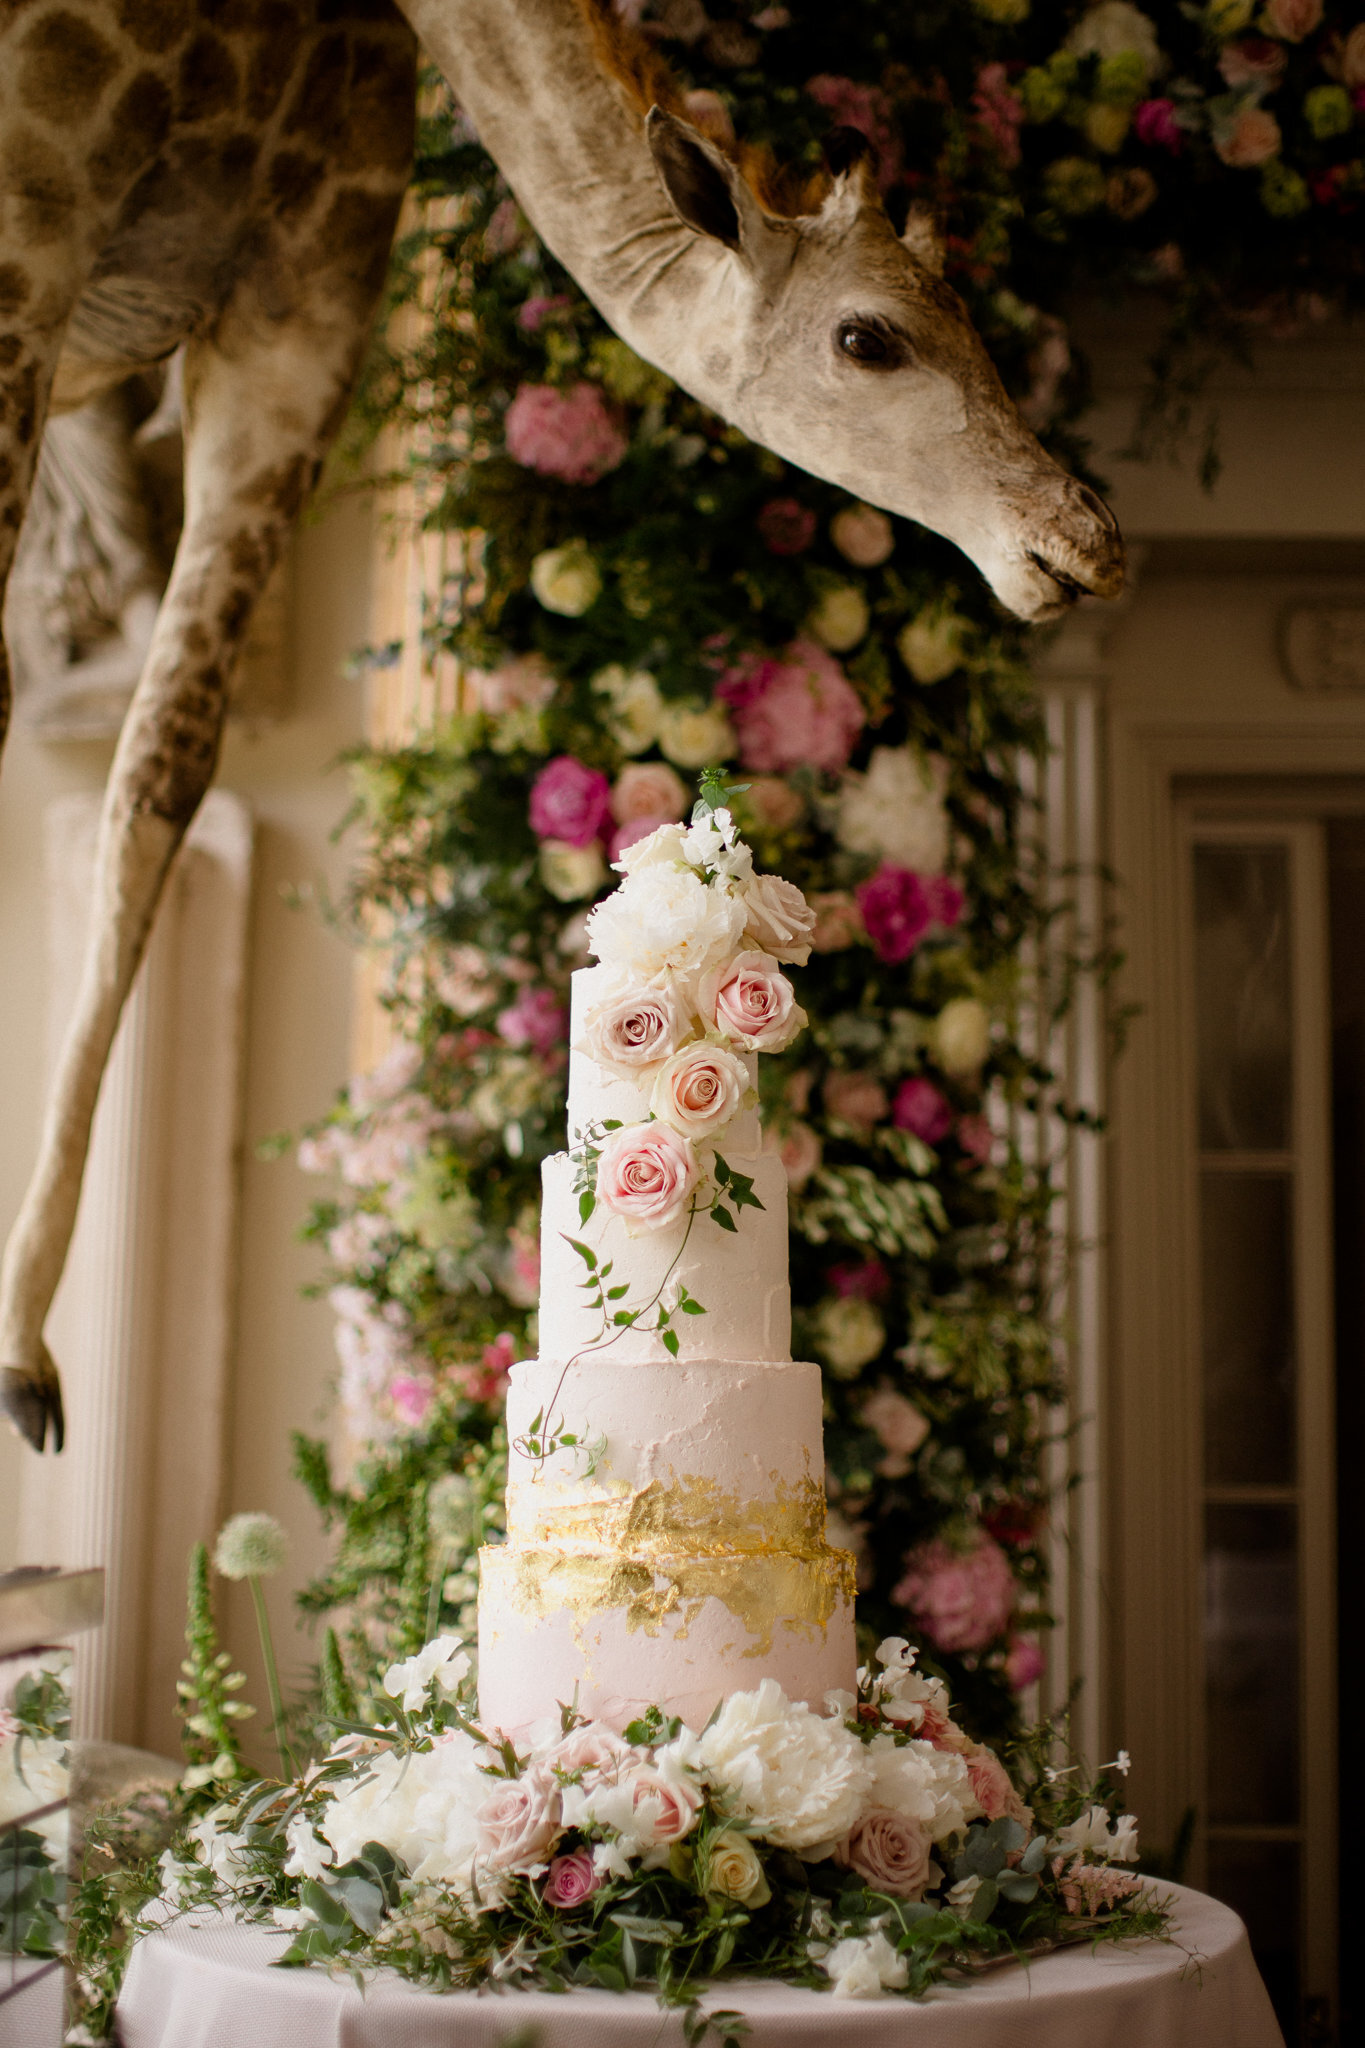 Mr and Mrs Smith - Aynhoe Park Wedding Cake